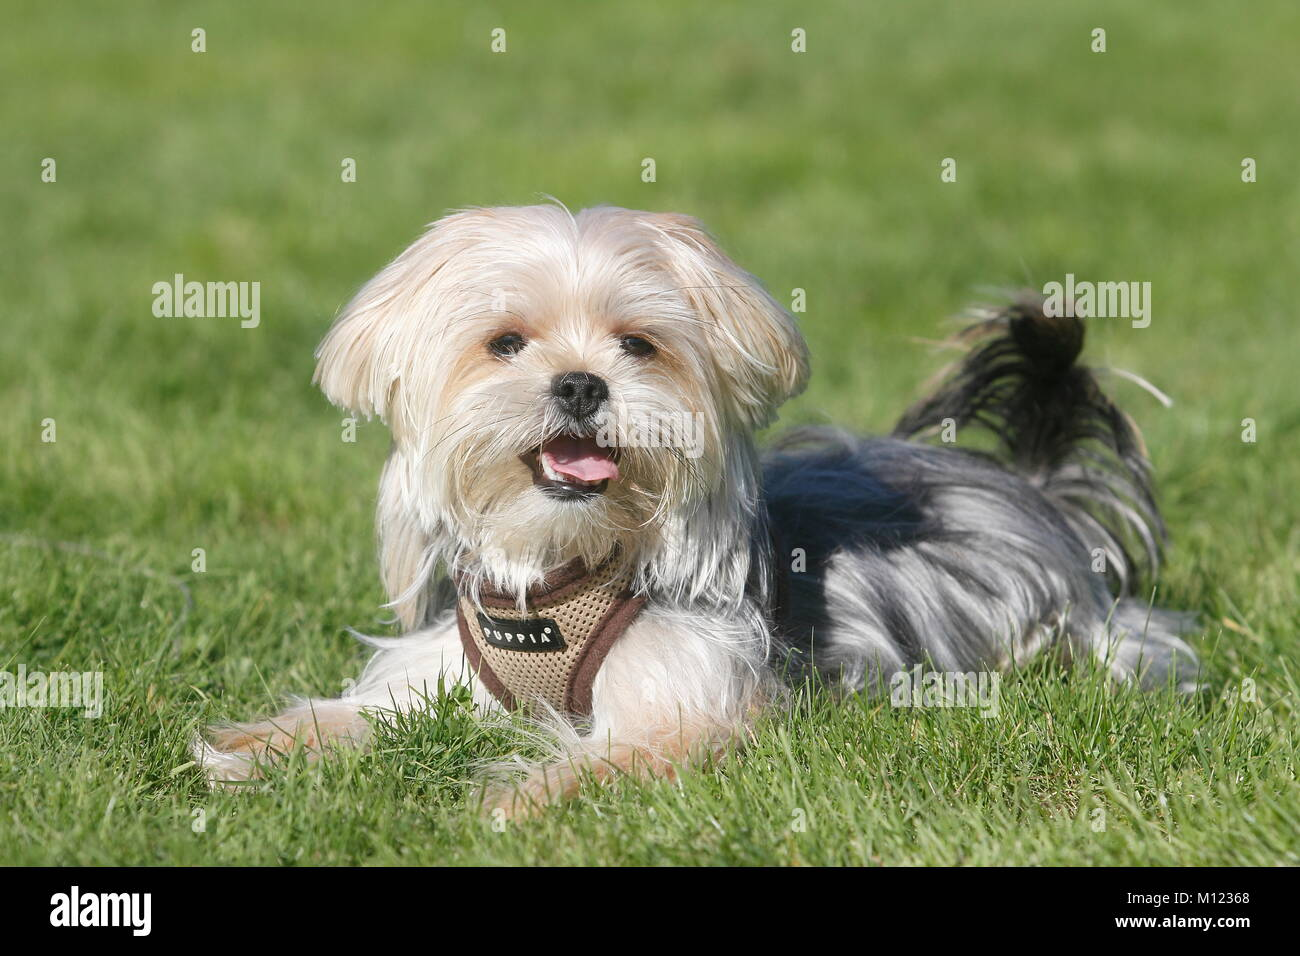 Yorkie Shih Tzu Mongrelmale1 Yearlies On The Meadownorth Stock